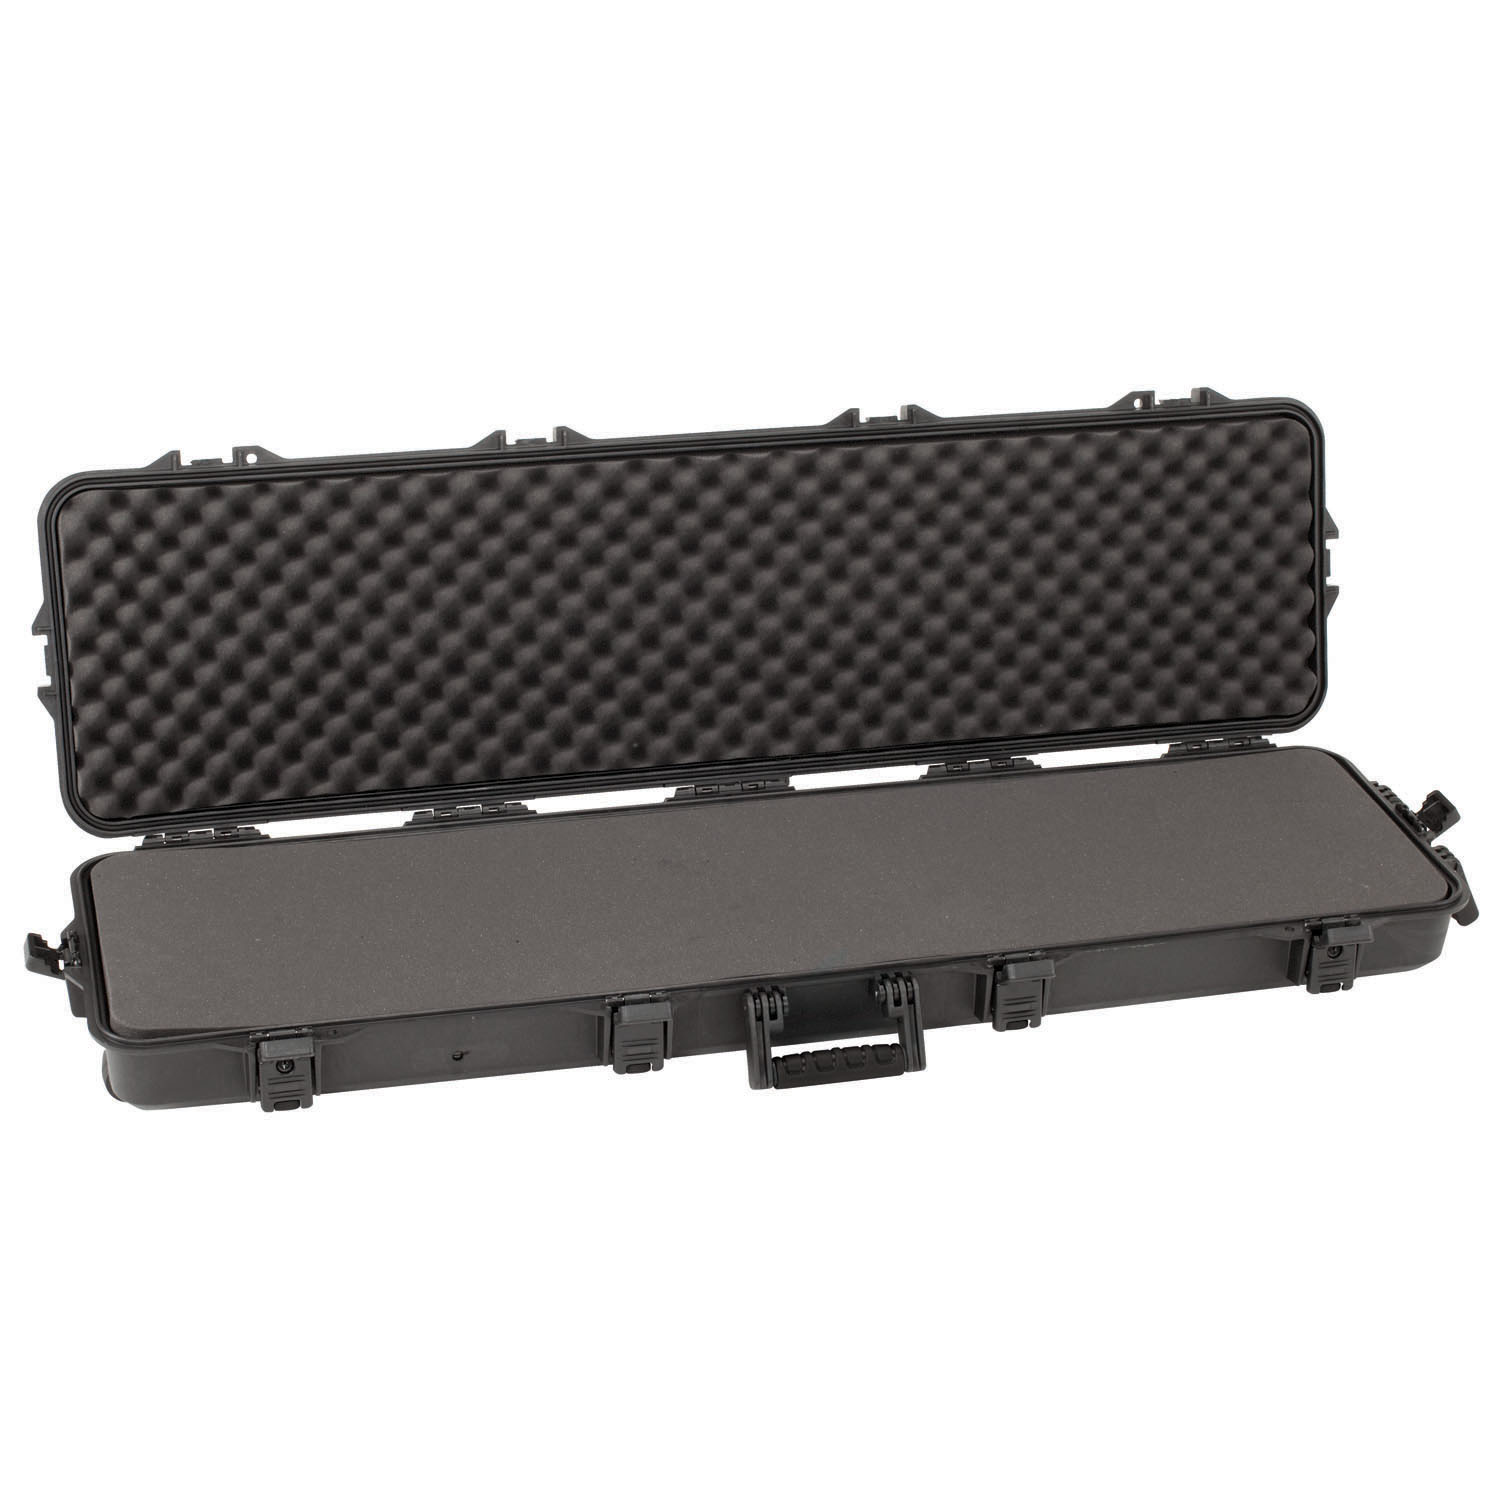 "Plano All Weather 52"" Gun Case"